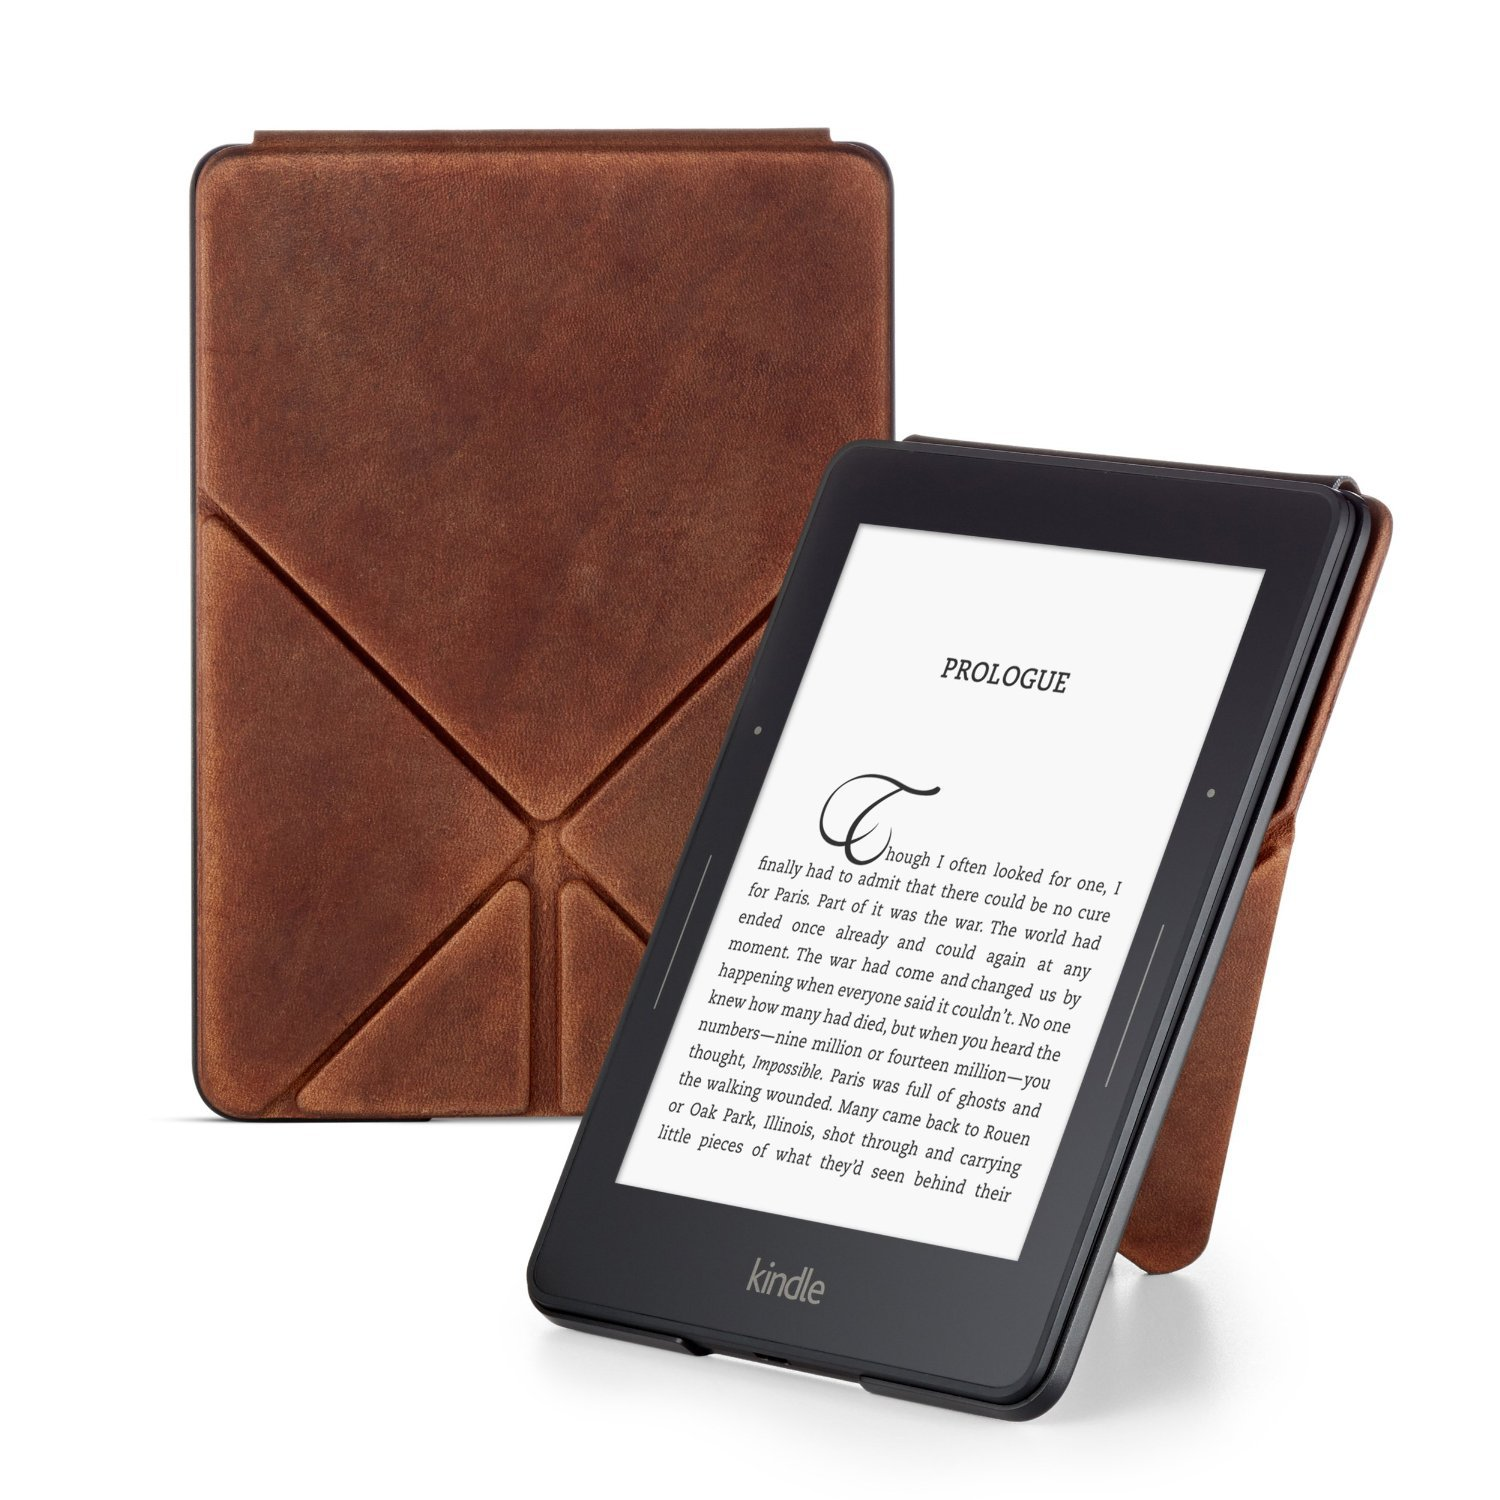 Чехол для Amazon Kindle Voyage Limited Edition Premium Leather Origami Cover (коричневый)